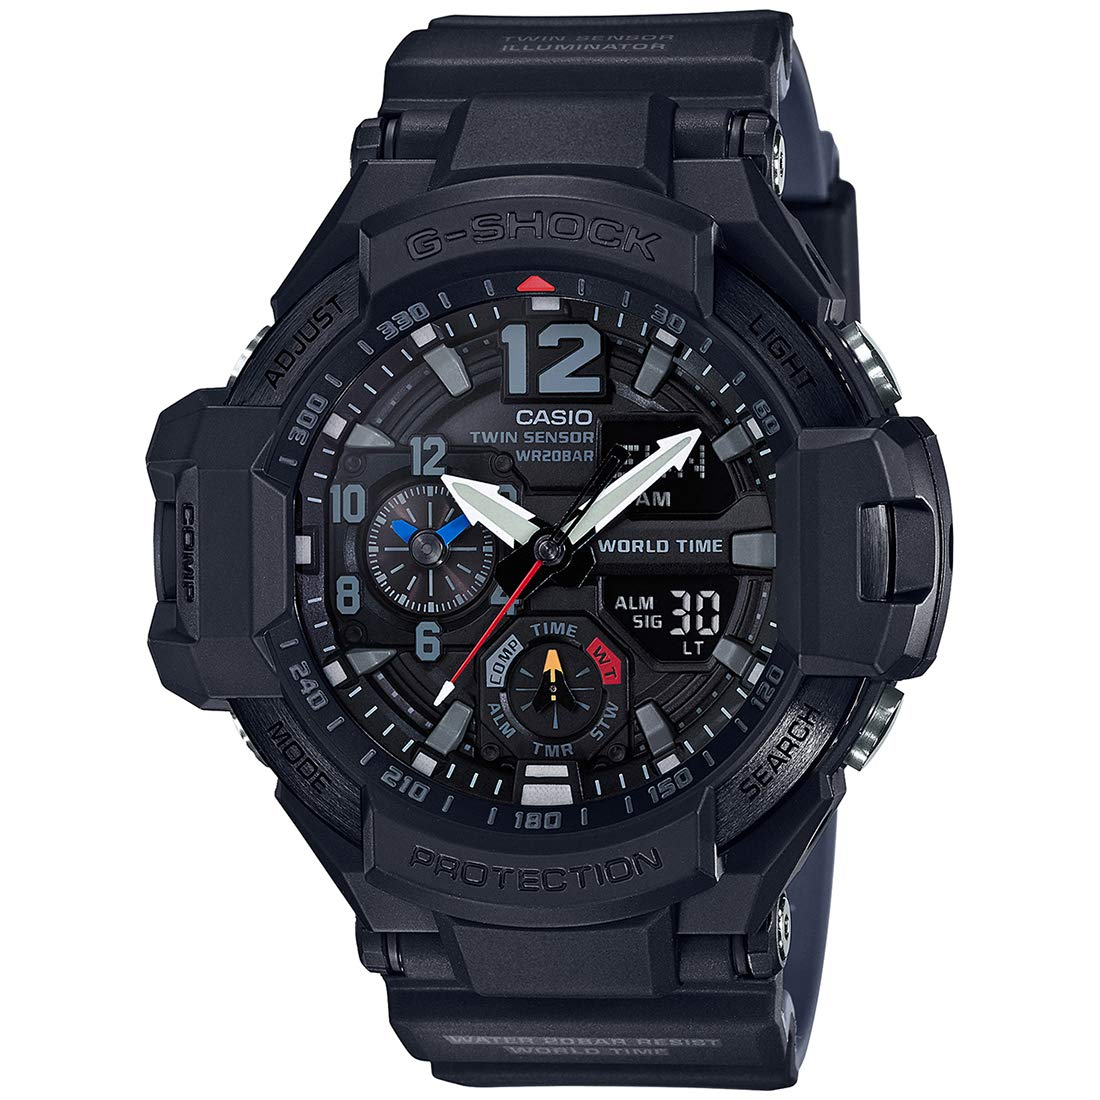 0888d083dce Buy Casio G-Shock Analog-Digital Black Dial Men s Watch - GA-1100-1A1DR  (G815) Online at Low Prices in India - Amazon.in